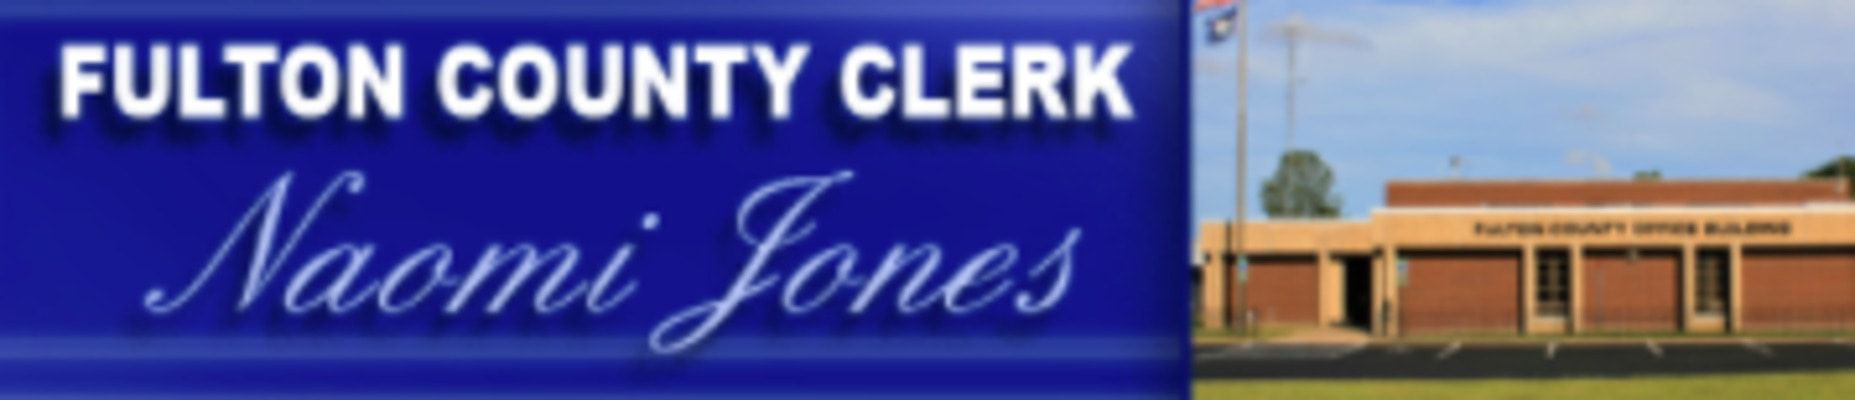 FULTON COUNTY CLERKS OFFICE UNAVAILABLE FOR VEHICLE SERVICES DUE TO SYSTEM ISSUES